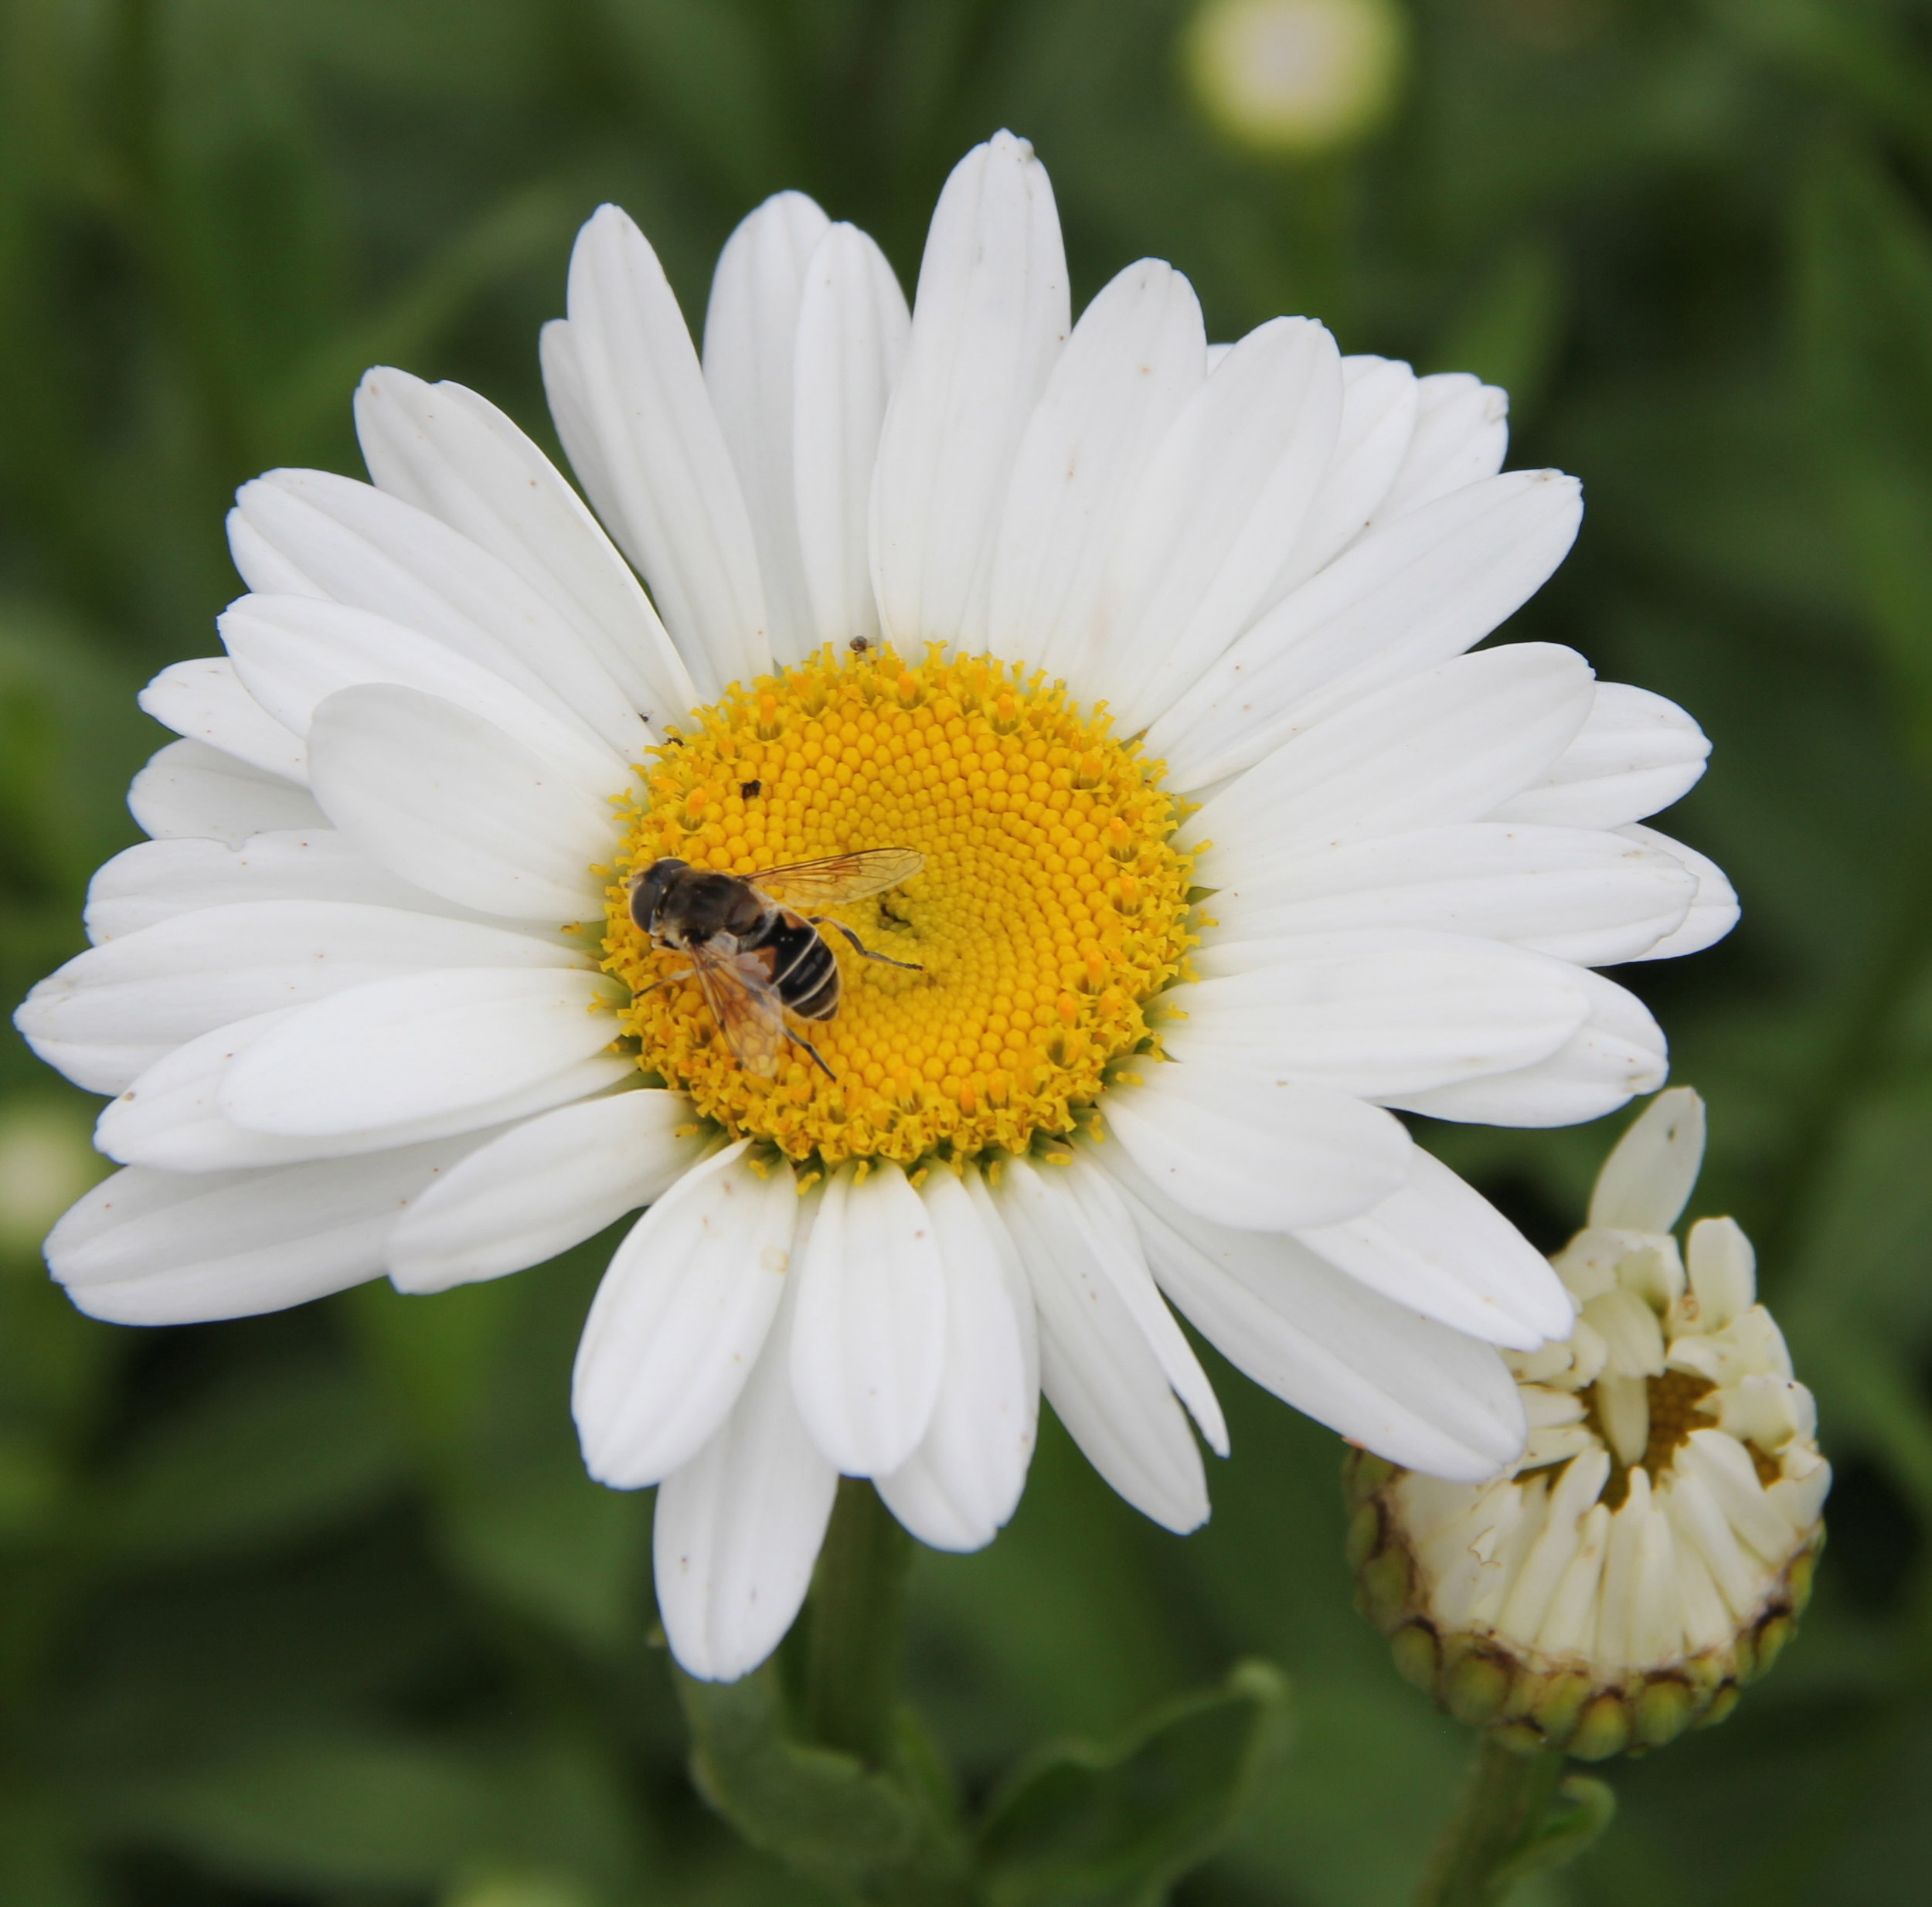 Tips for supporting native pollinators in your area: -